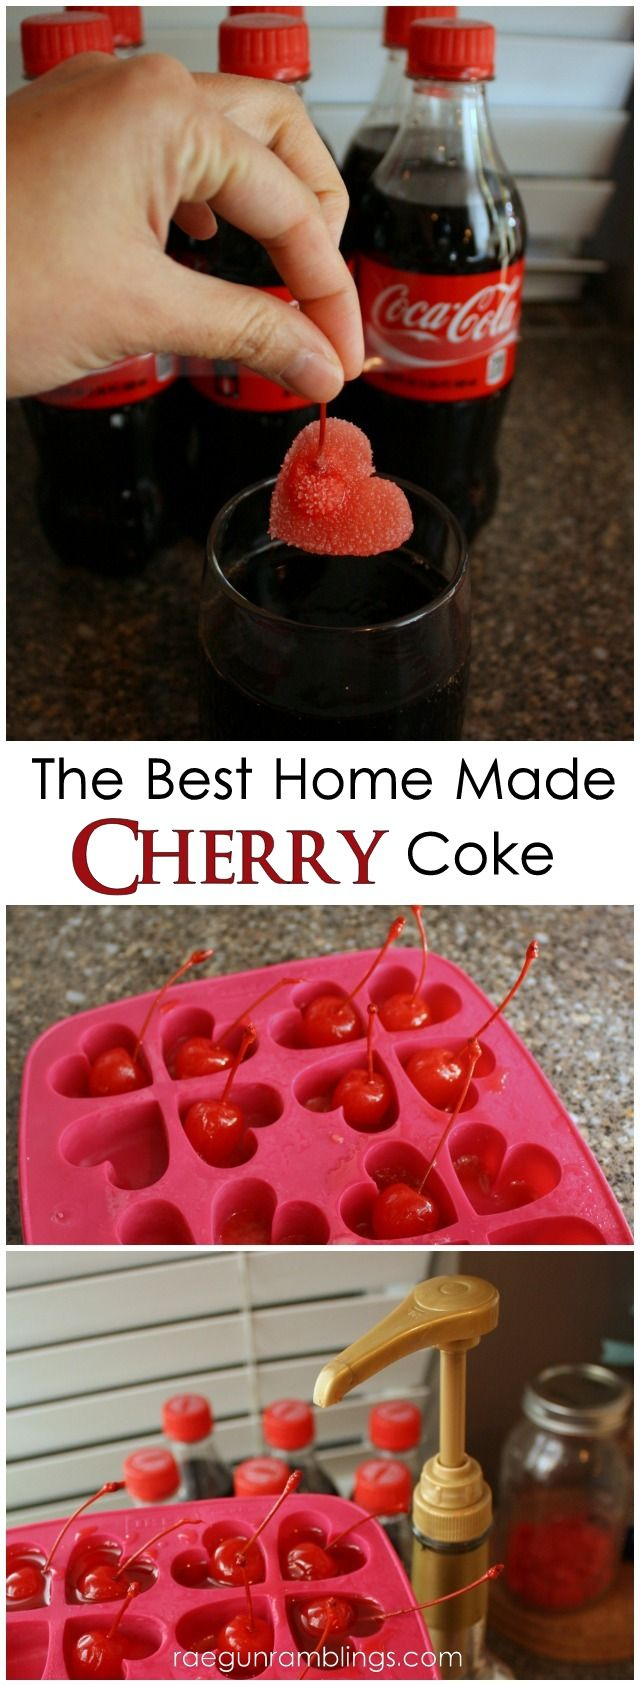 Cherry Ice Cubes (hearts) + Cherry Coke How To:...... Cherry Syrup (Torani or Maraschino Syrup), Maraschino Cherries, Coke, Ice Cube Tray.... Place a cherry in each ice cube slot. Add one pump of cherry syrup to each cube spot. Top with water. Freeze until solid. When you are ready to serve pop a couple into a glass of Coke and enjoy. I only had a heart ice cube tray which I thought made it extra cute.